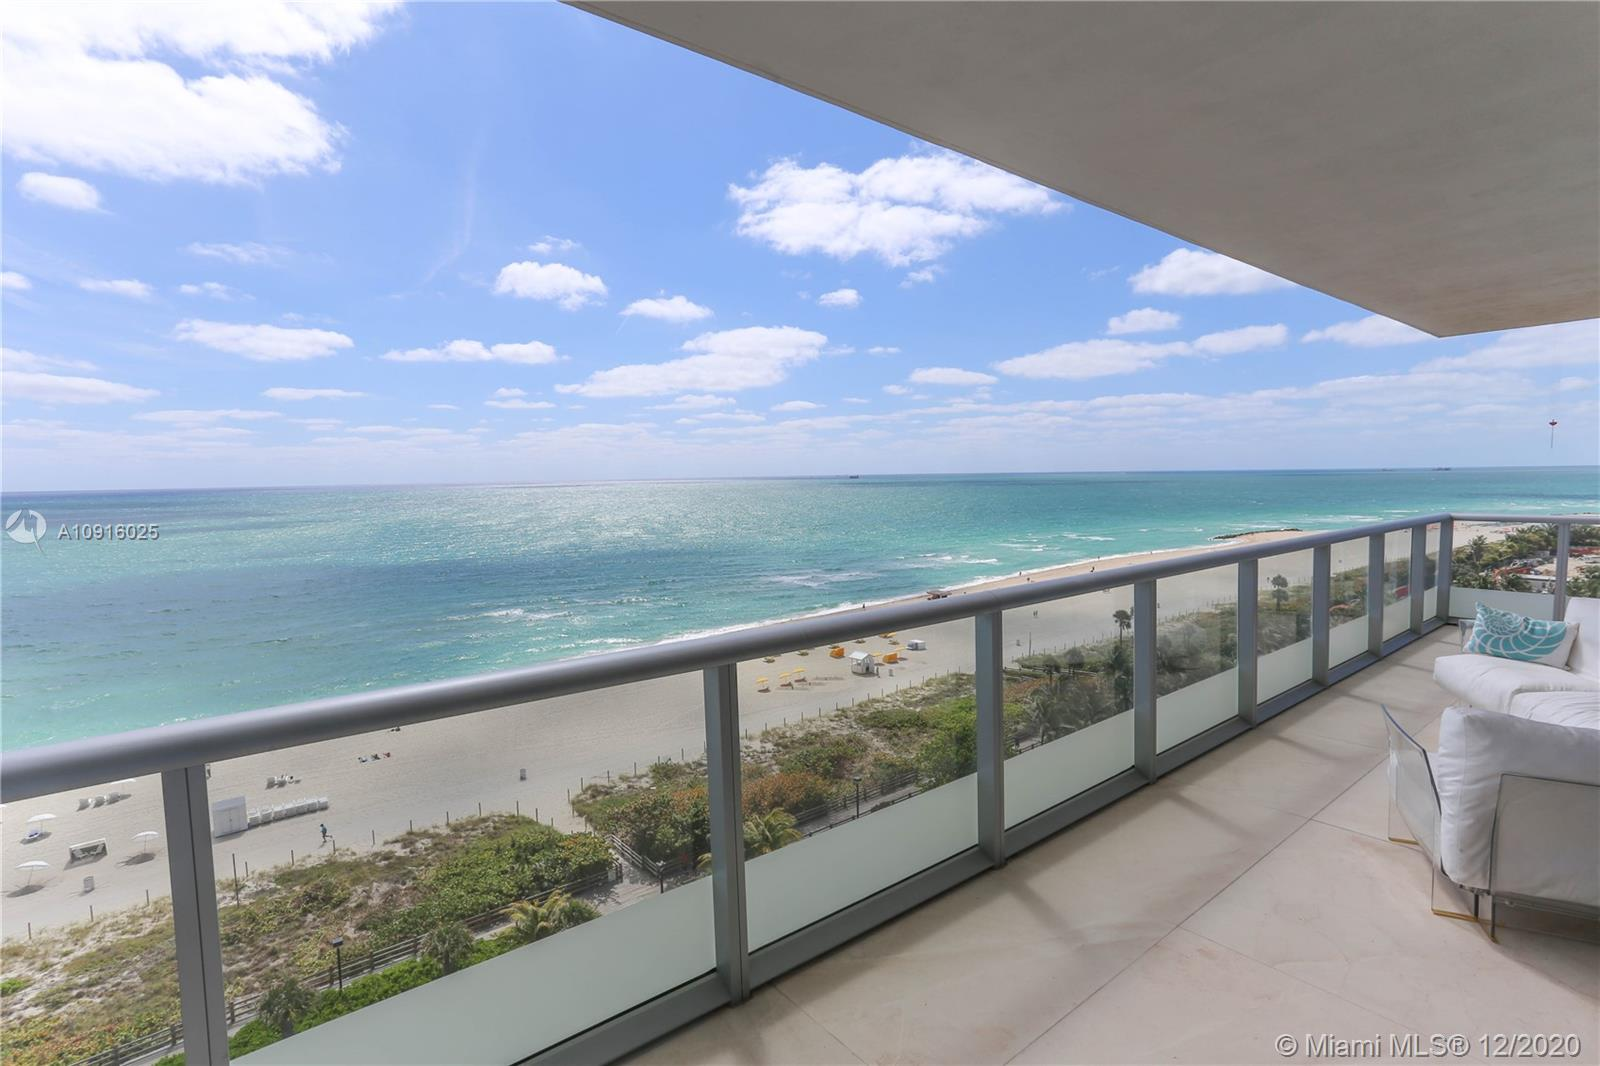 Extremely rare direct ocean view Southeast corner 3 bedrooms 3.5 bathrooms Caribbean South Beach unit. Tastefully designed 2326 sf interiors 800+sf balcony has European kitchen with Miele appliances, Sub-Zero gas range, Marble Floors. The building offers the state of the art gym, business center, beach service, pool, valet service and 24 hr front desk, private wine cellar. Walking distance from Soho House, Fontainebleau, Faena, and the Edition Hotel.